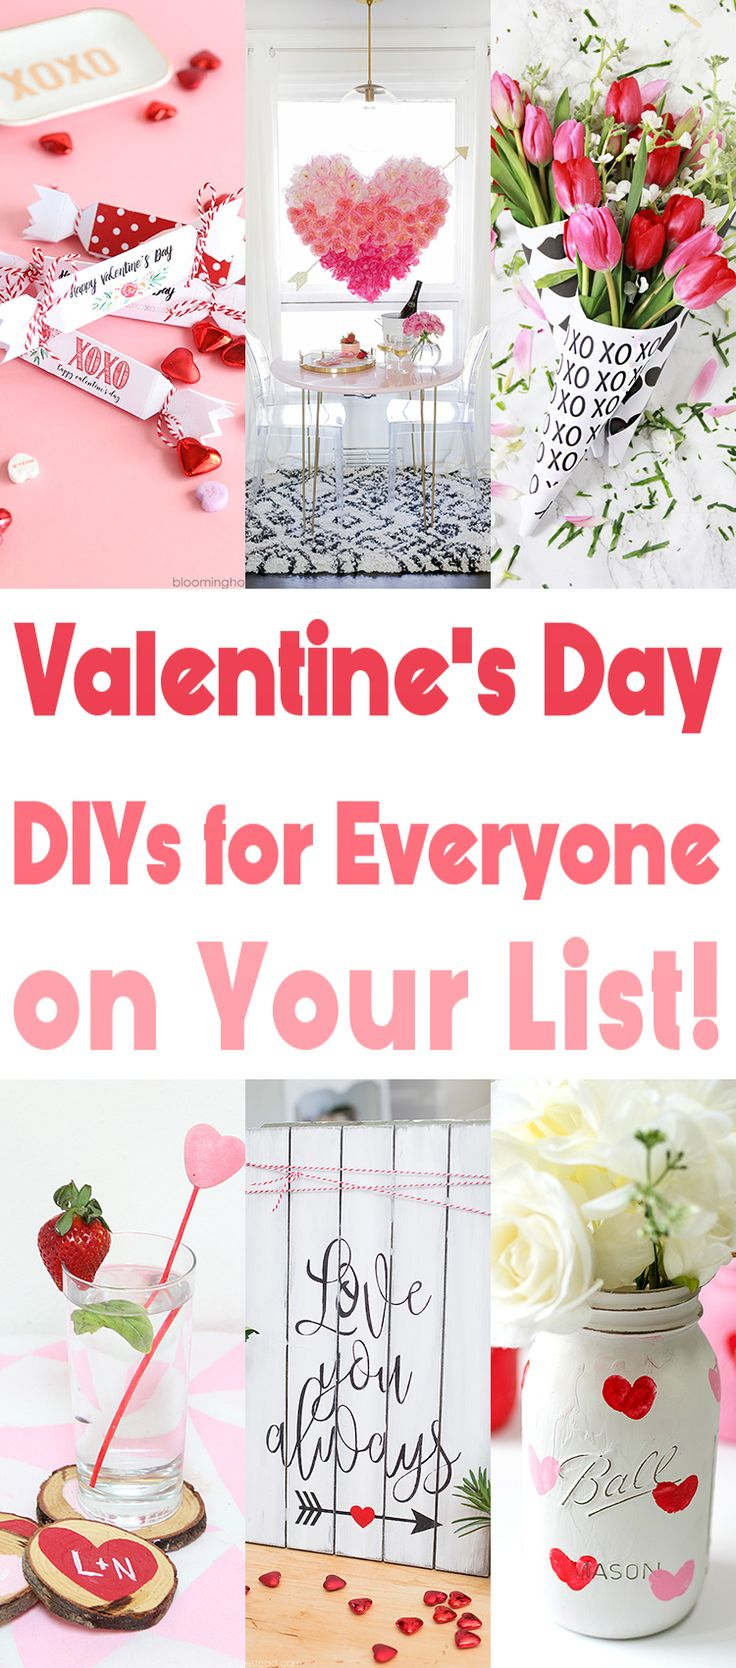 335 best holidays - valentine's day images on pinterest